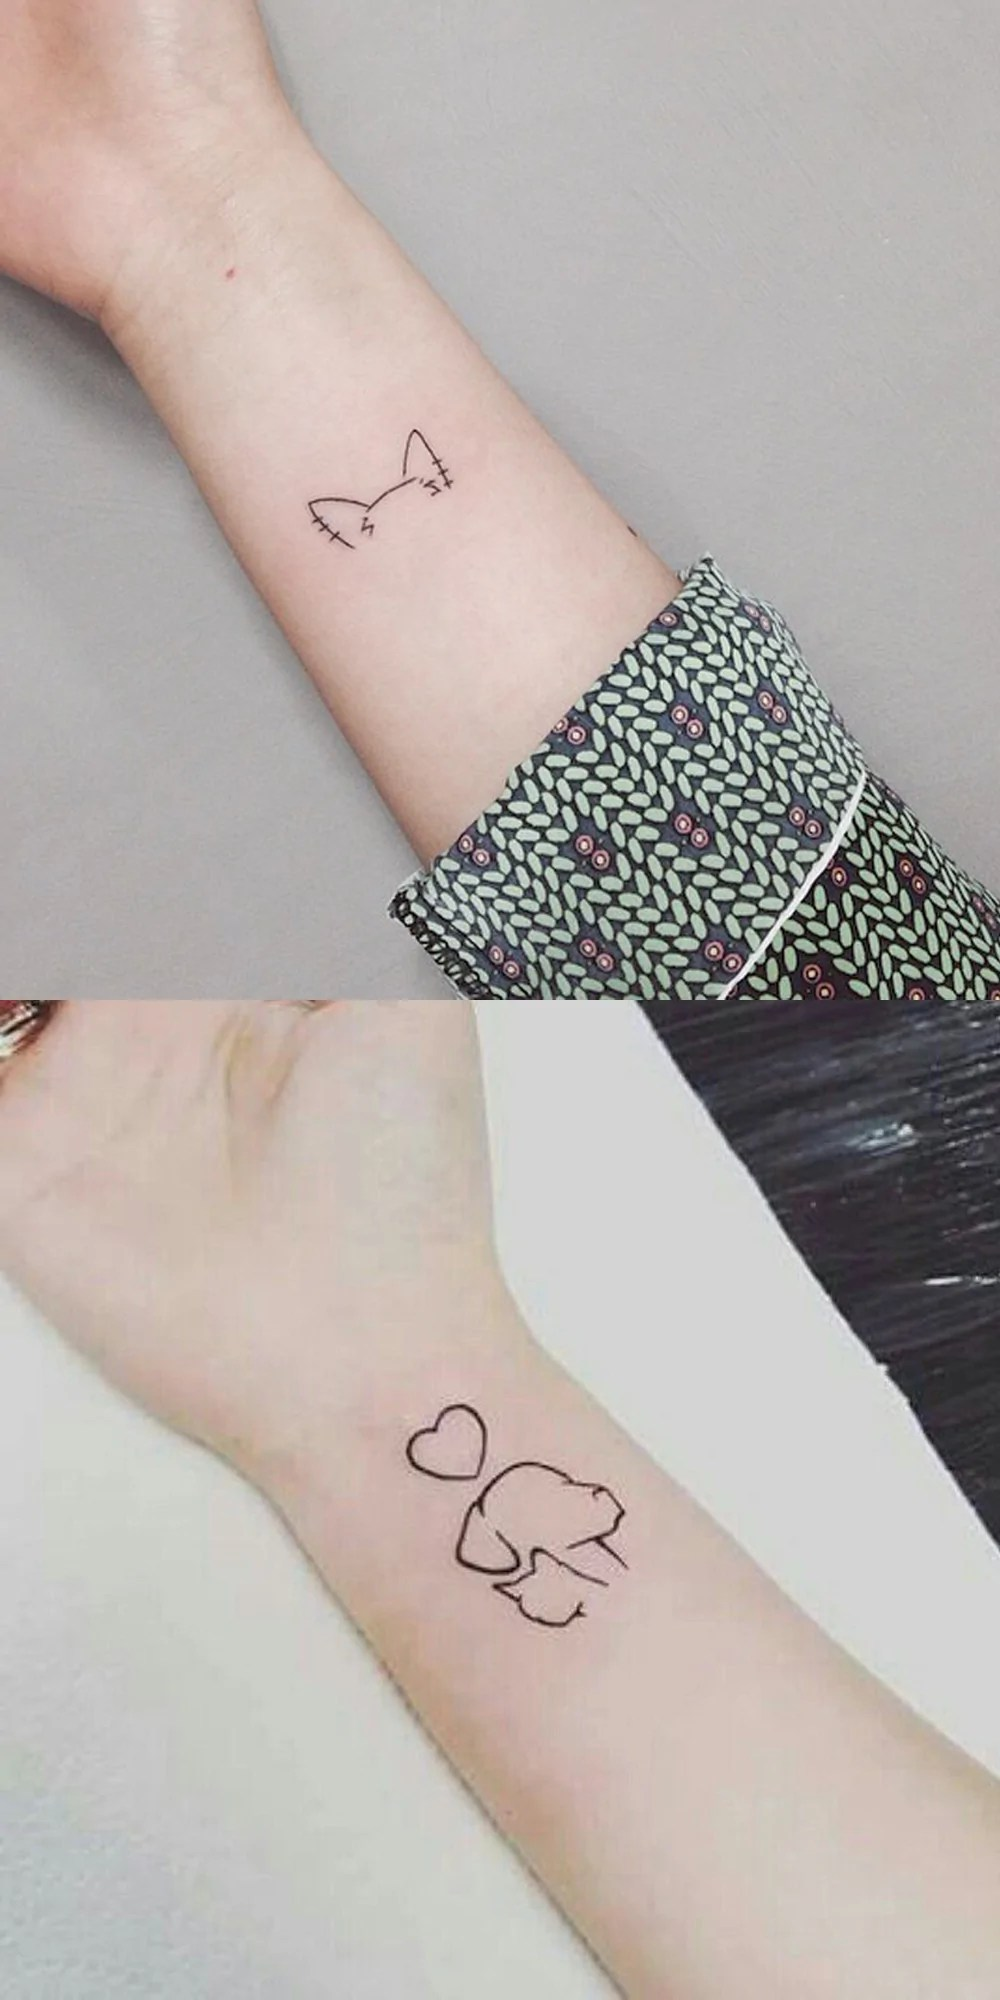 Cute Small Minimal Cat Dog Outline Wrist Tattoo Ideas For Ideas And Designs